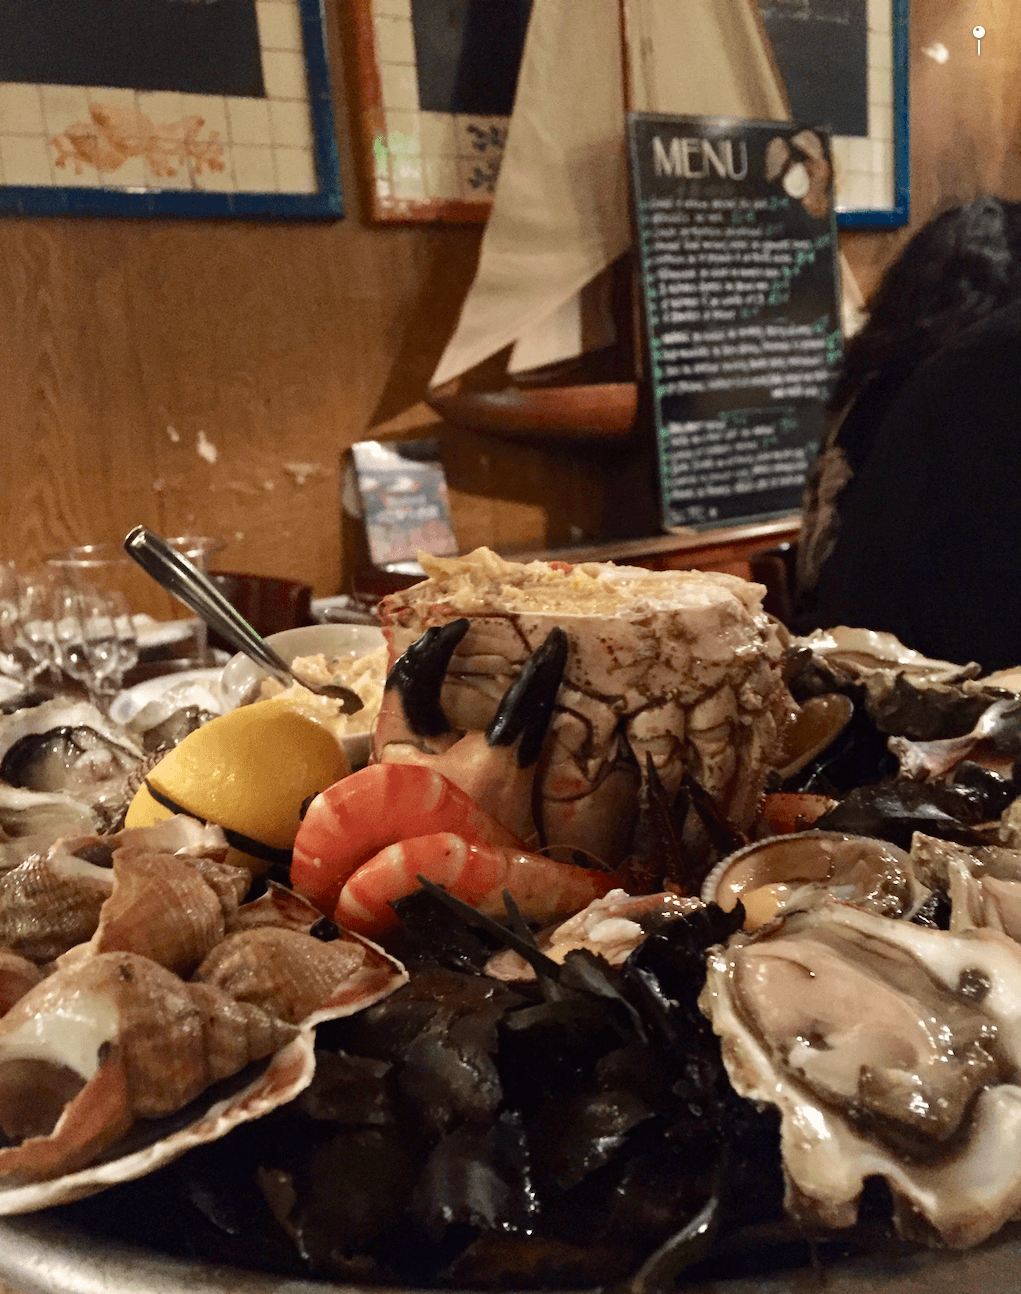 Seafood Platter from L'ecailler Du Bistrot in Paris with @dishourtown